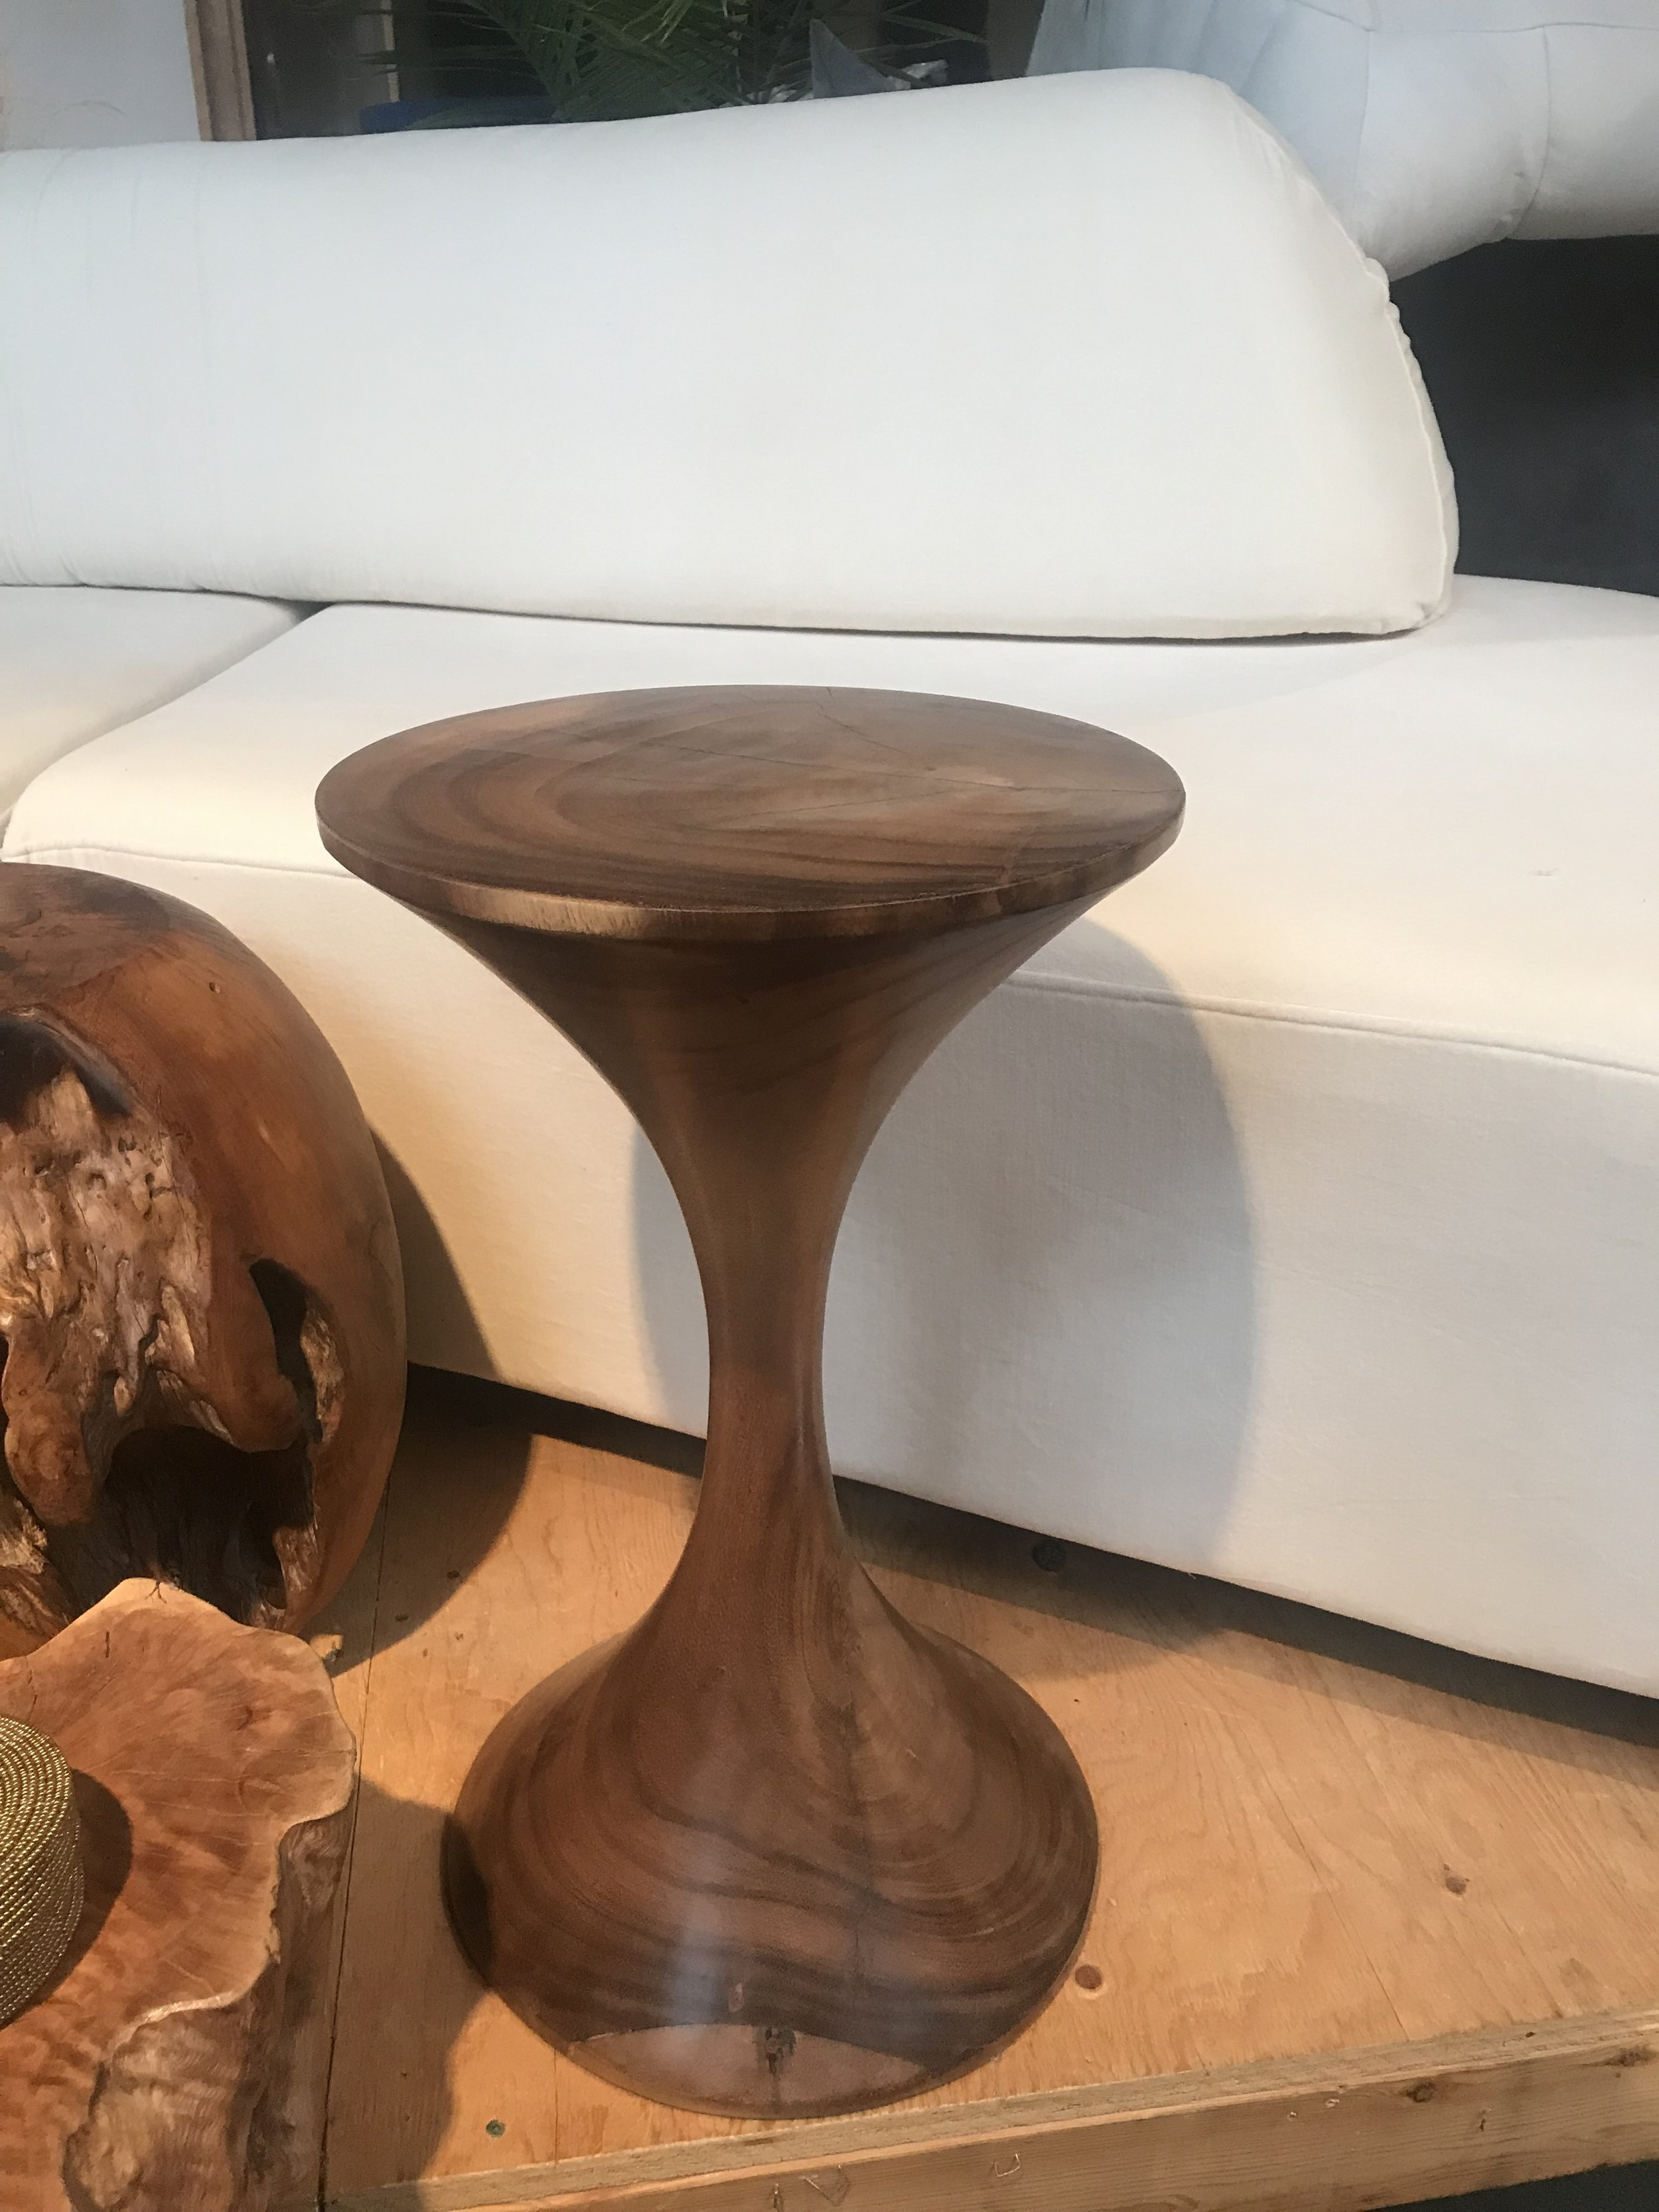 This incredible side table is sculpted from a single piece of wood. Light and elegant.